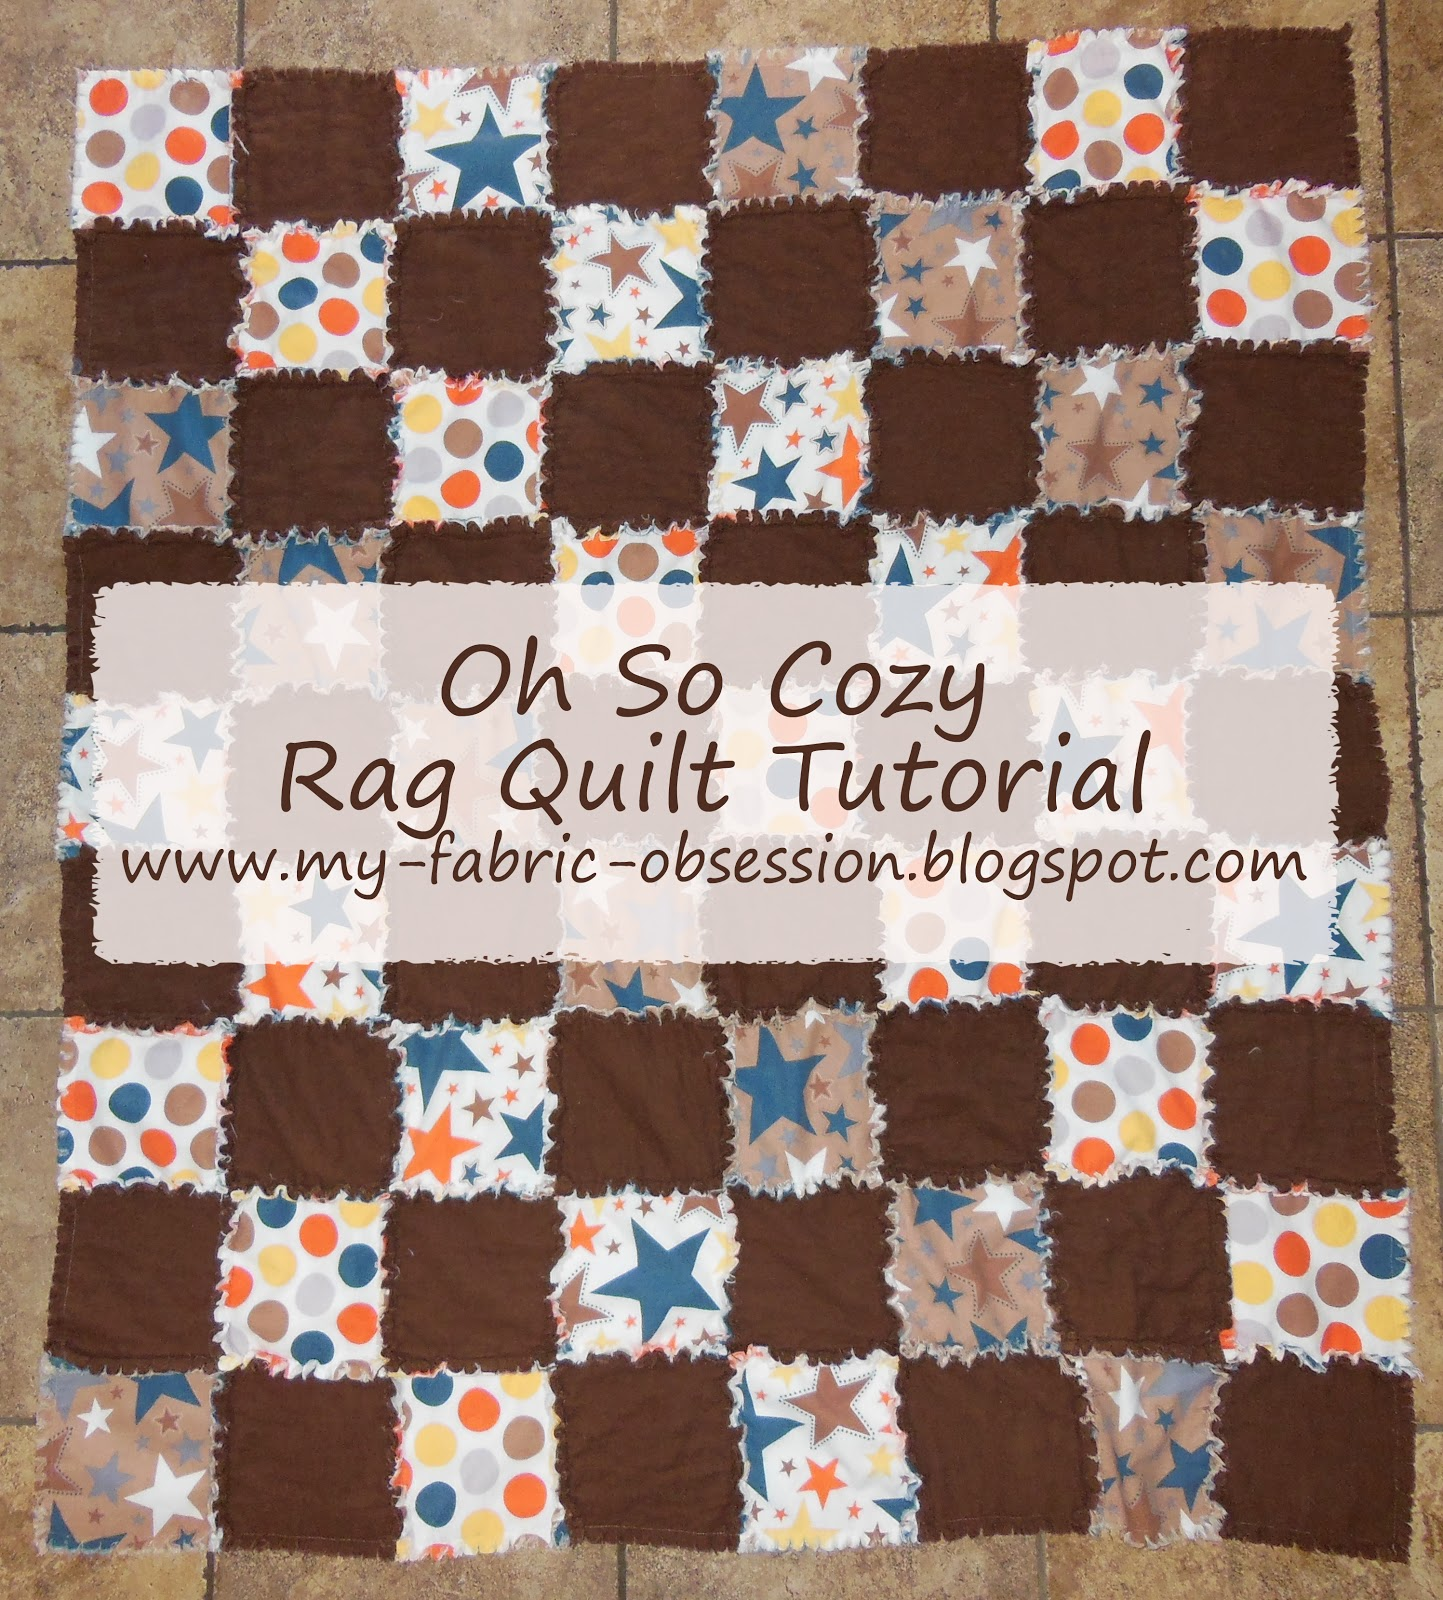 My Fabric Obsession: Oh So Cozy Flannel Rag Quilt Tutorial